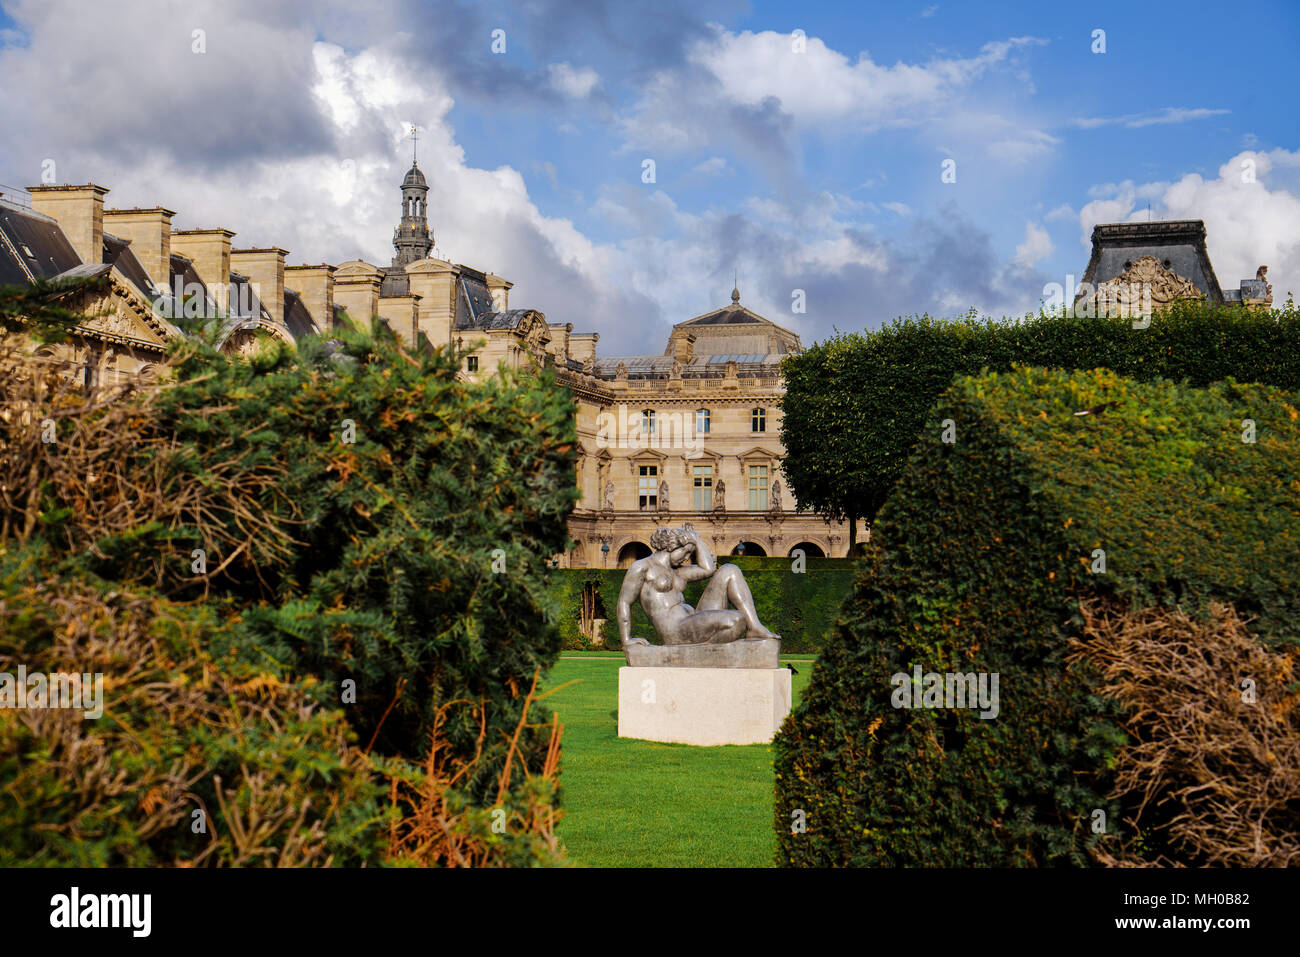 louvre palace and tuileries garden - Tuileries Garden